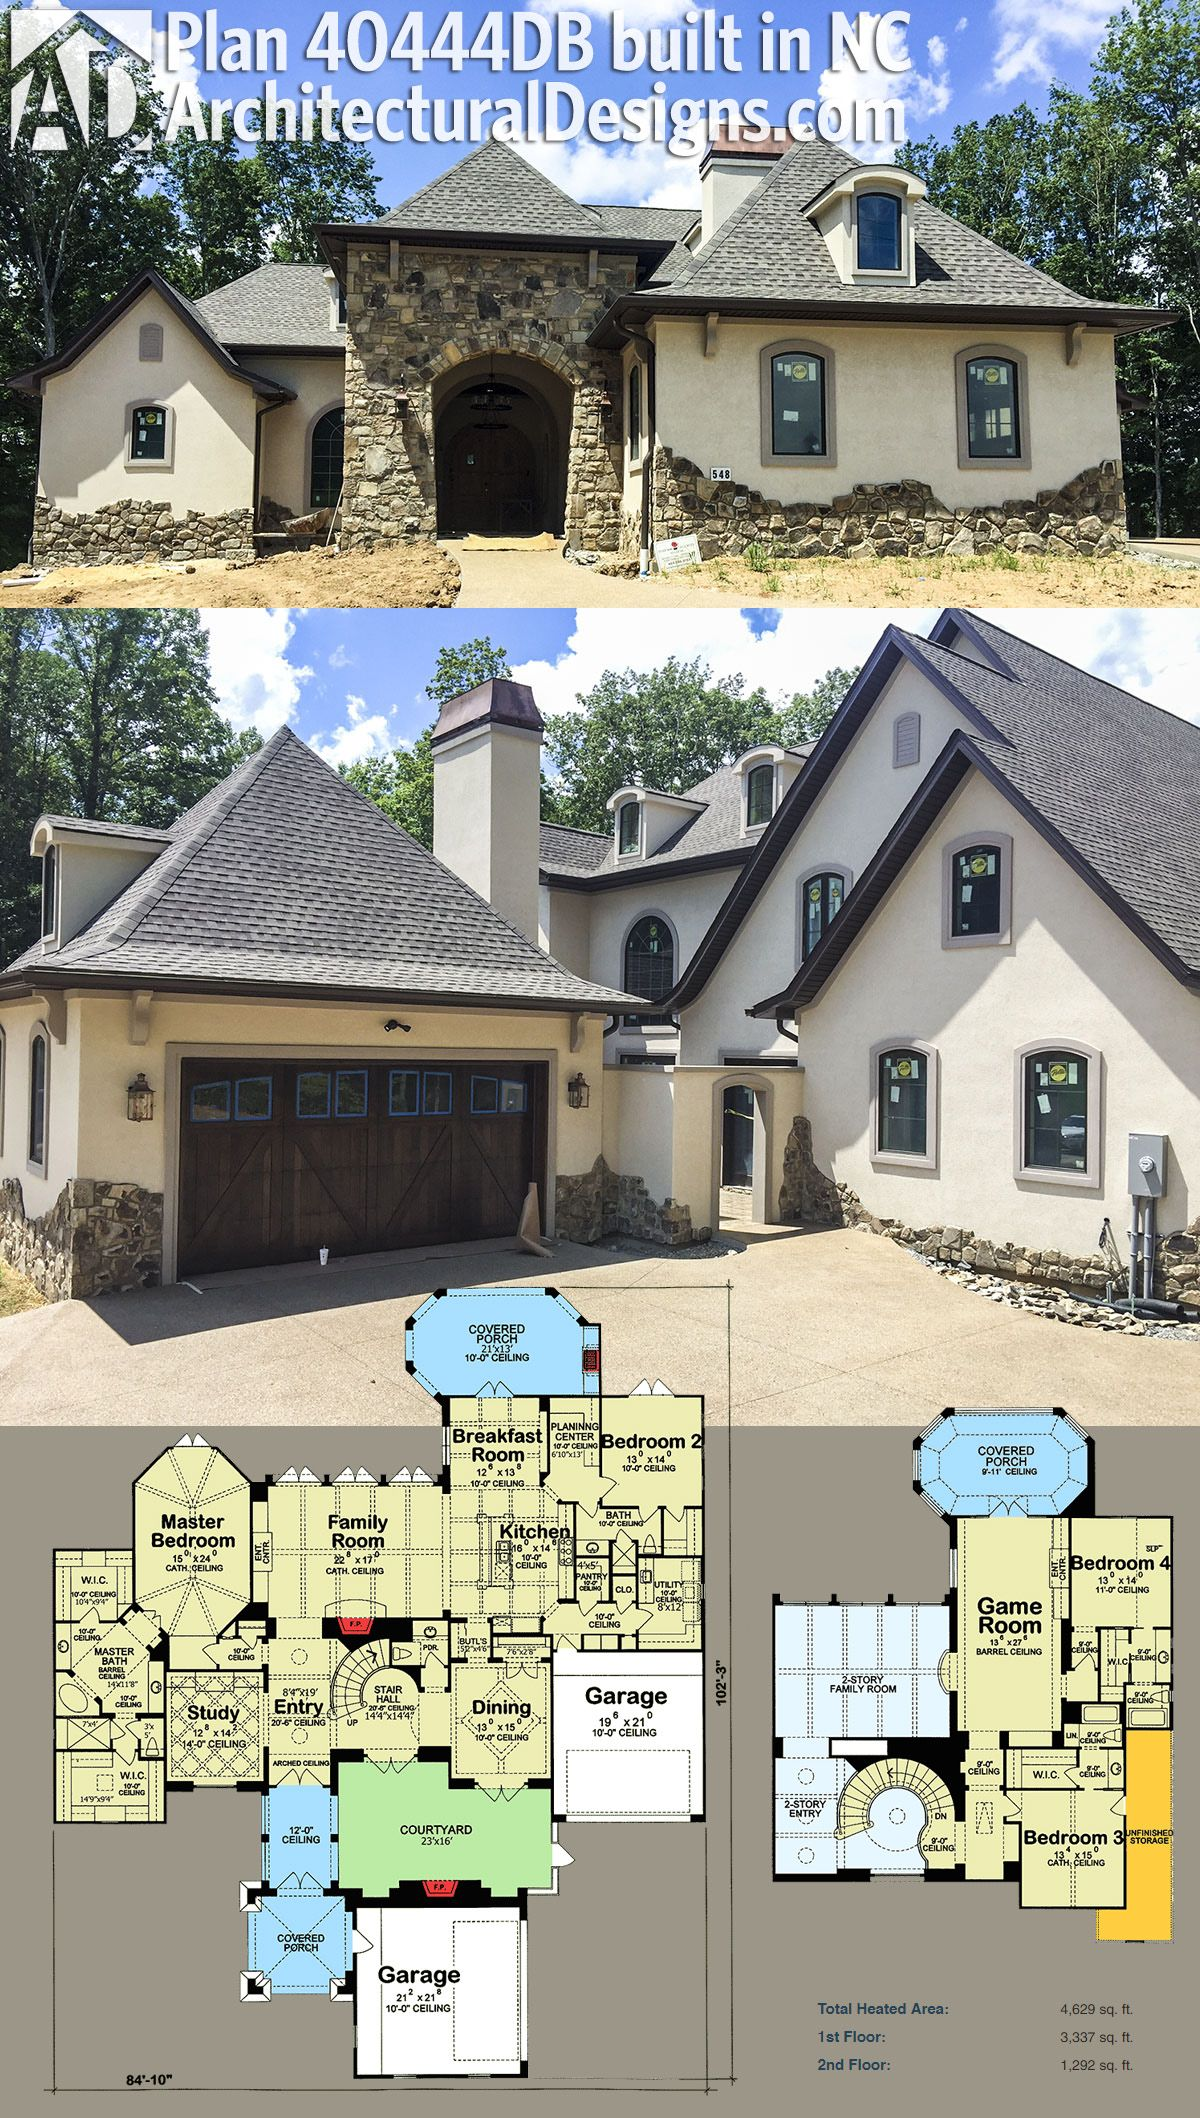 Plan 40444DB: Exceptional French Country Manor | House Plans ... on log stone house, cottage stone house, tudor stone house, 5 bedroom stone house, colonial stone house, manufactured stone house, craftsman stone house, contemporary stone house, 10-story house, ranch stone house, brick stone house, transitional stone house, victorian stone house, one story house, 1 story brick house, mediterranean stone house, stucco stone house, custom stone house, 3 story house, split stone house,